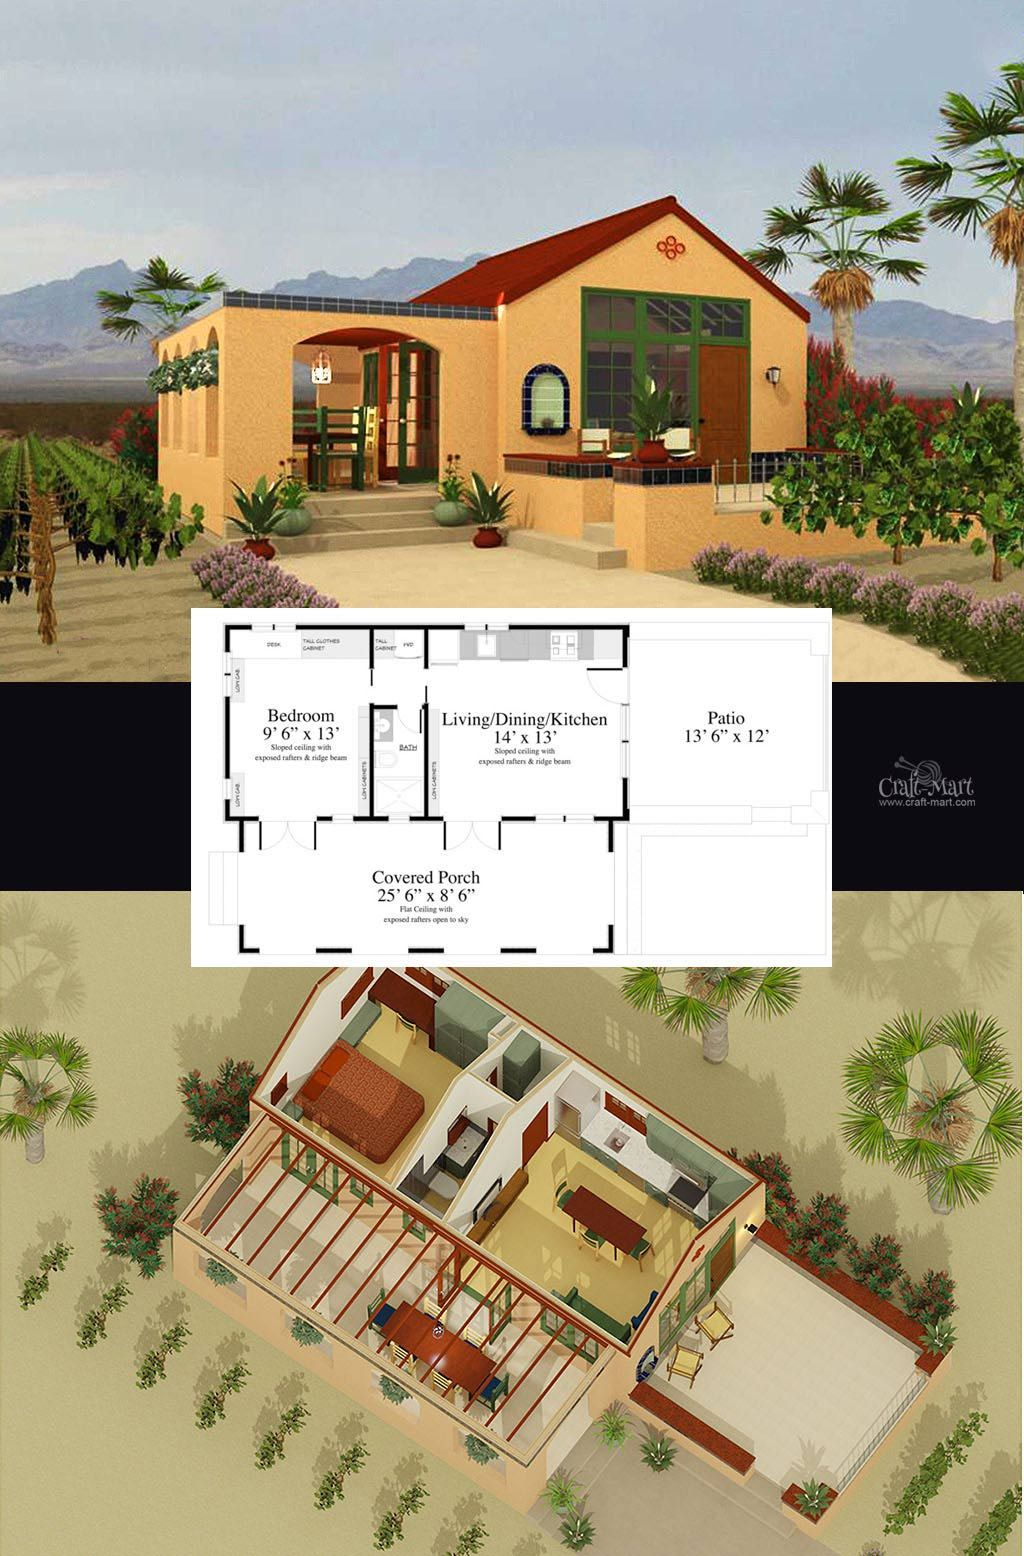 27 Adorable Free Tiny House Floor Plans With Images Tiny House Floor Plans Tiny House Plans House Flooring